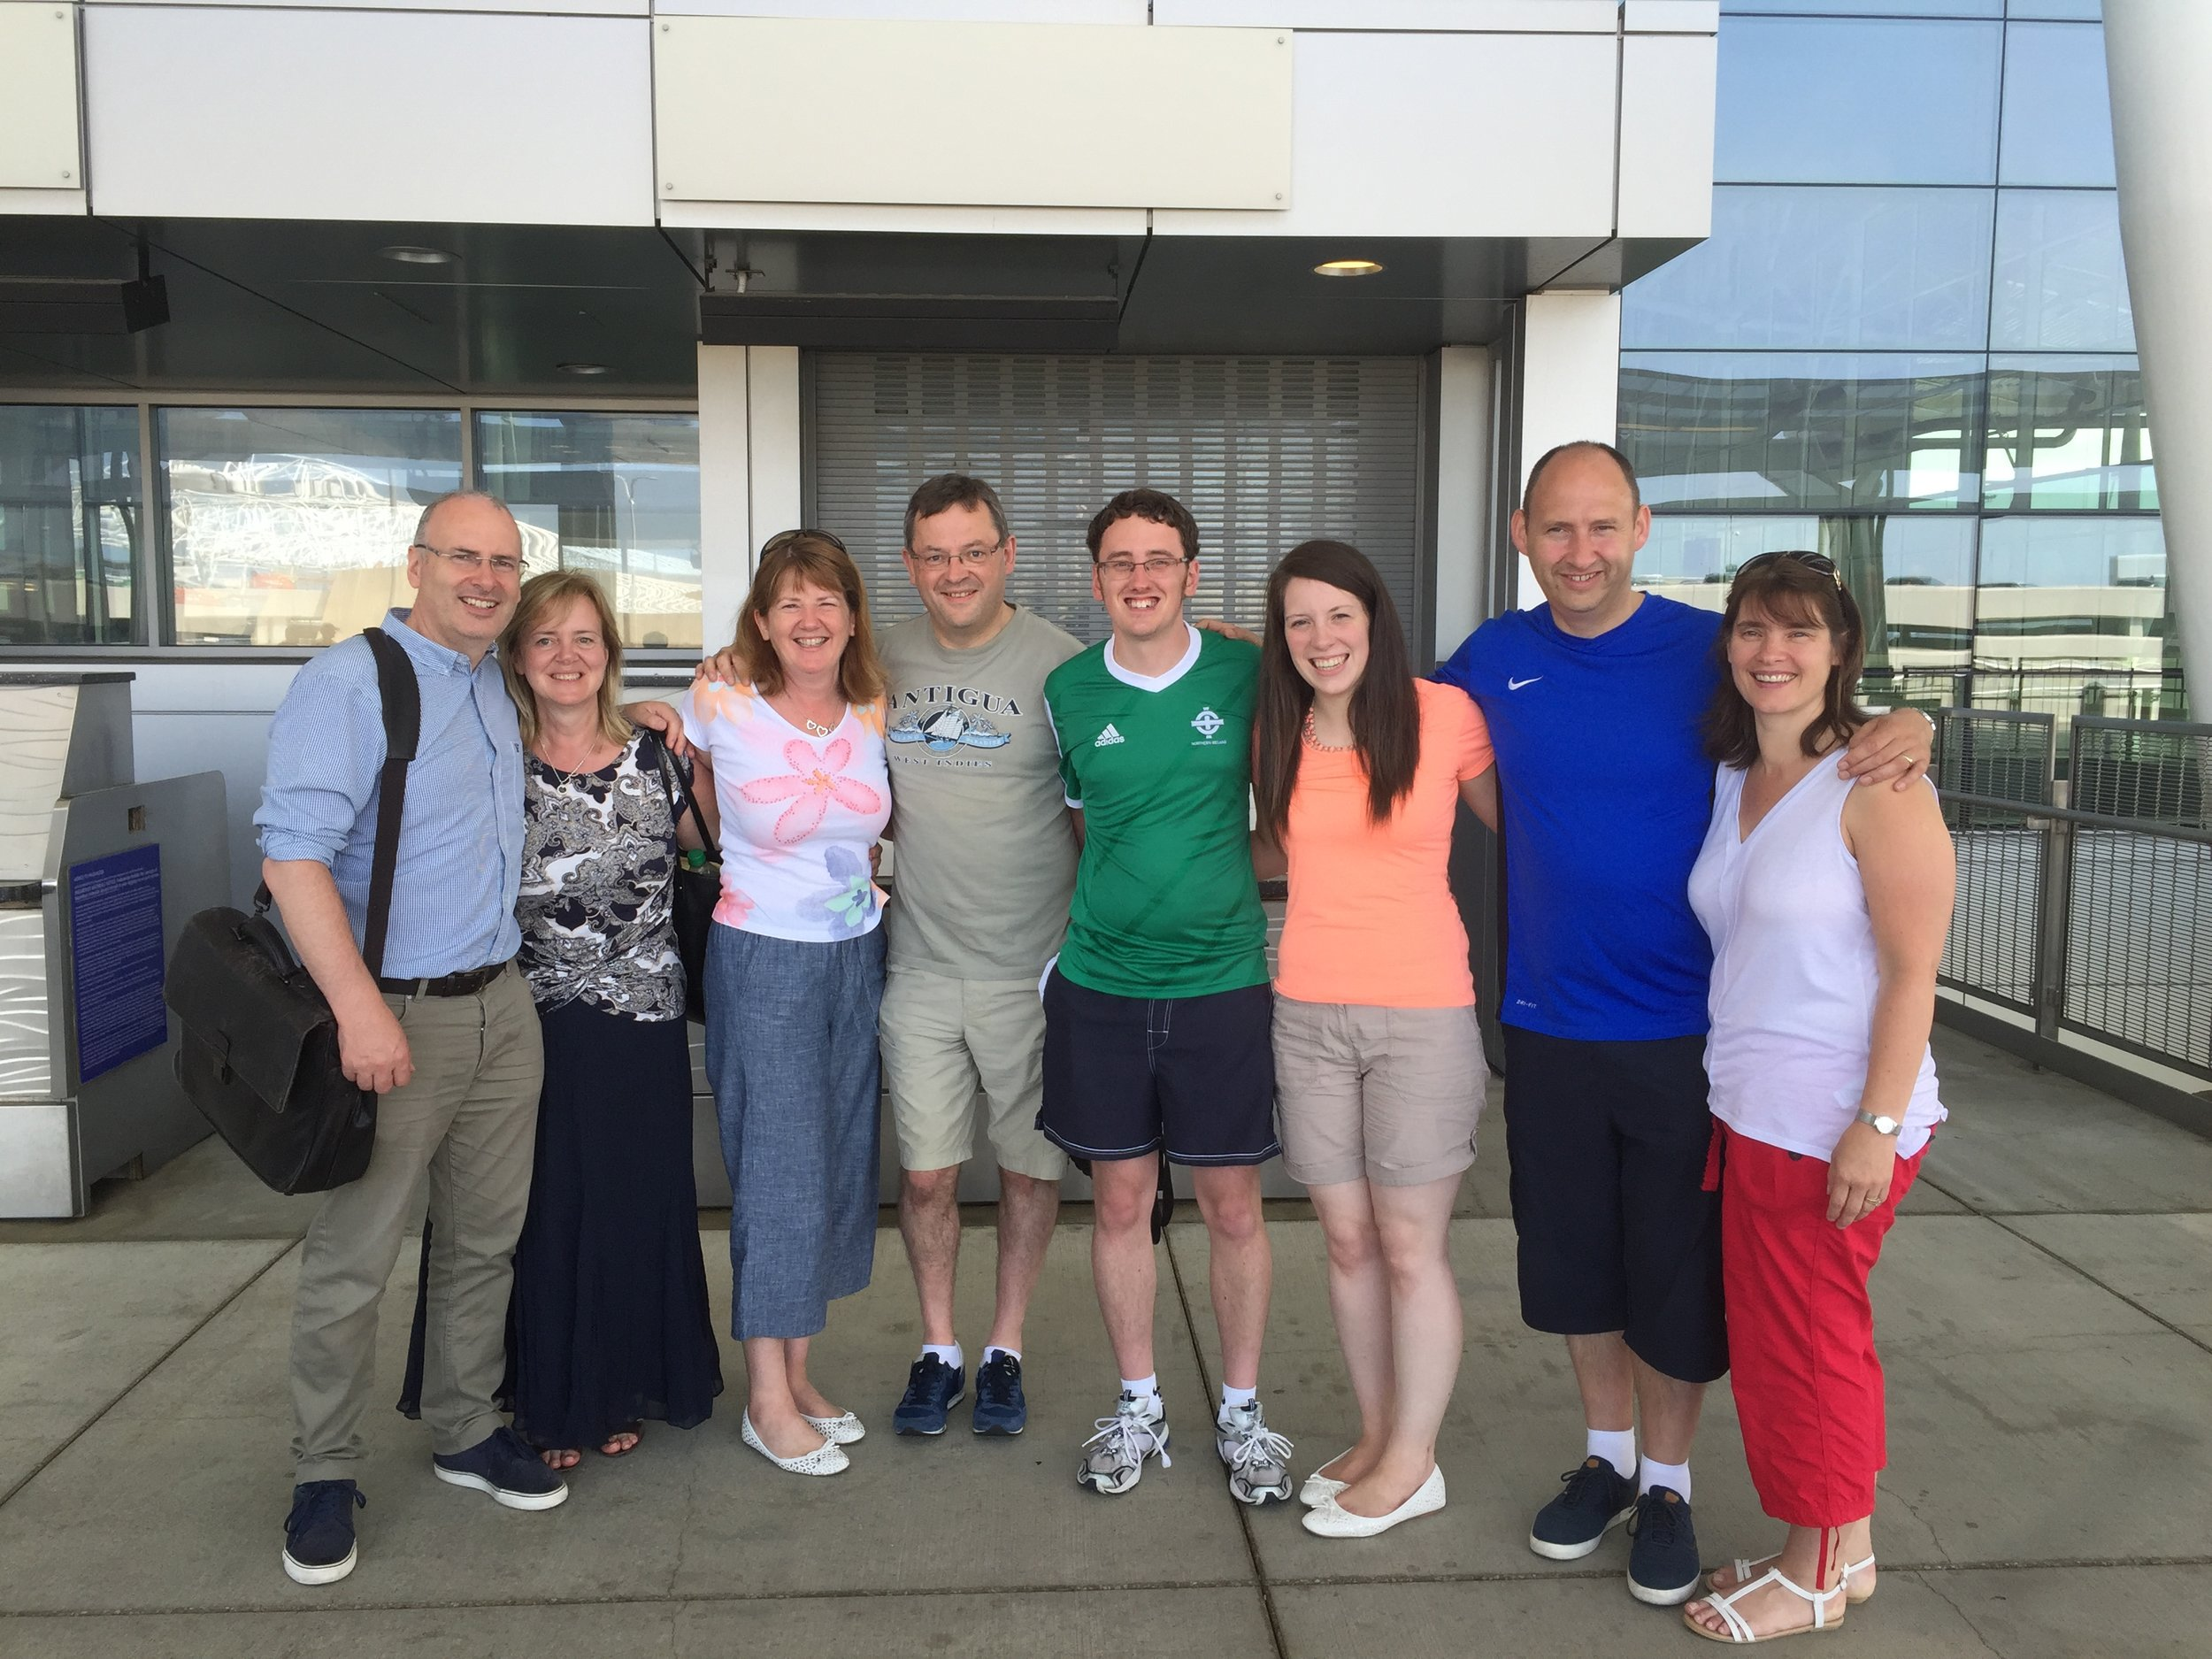 Some of the Scottish contingent at the airport on the way home